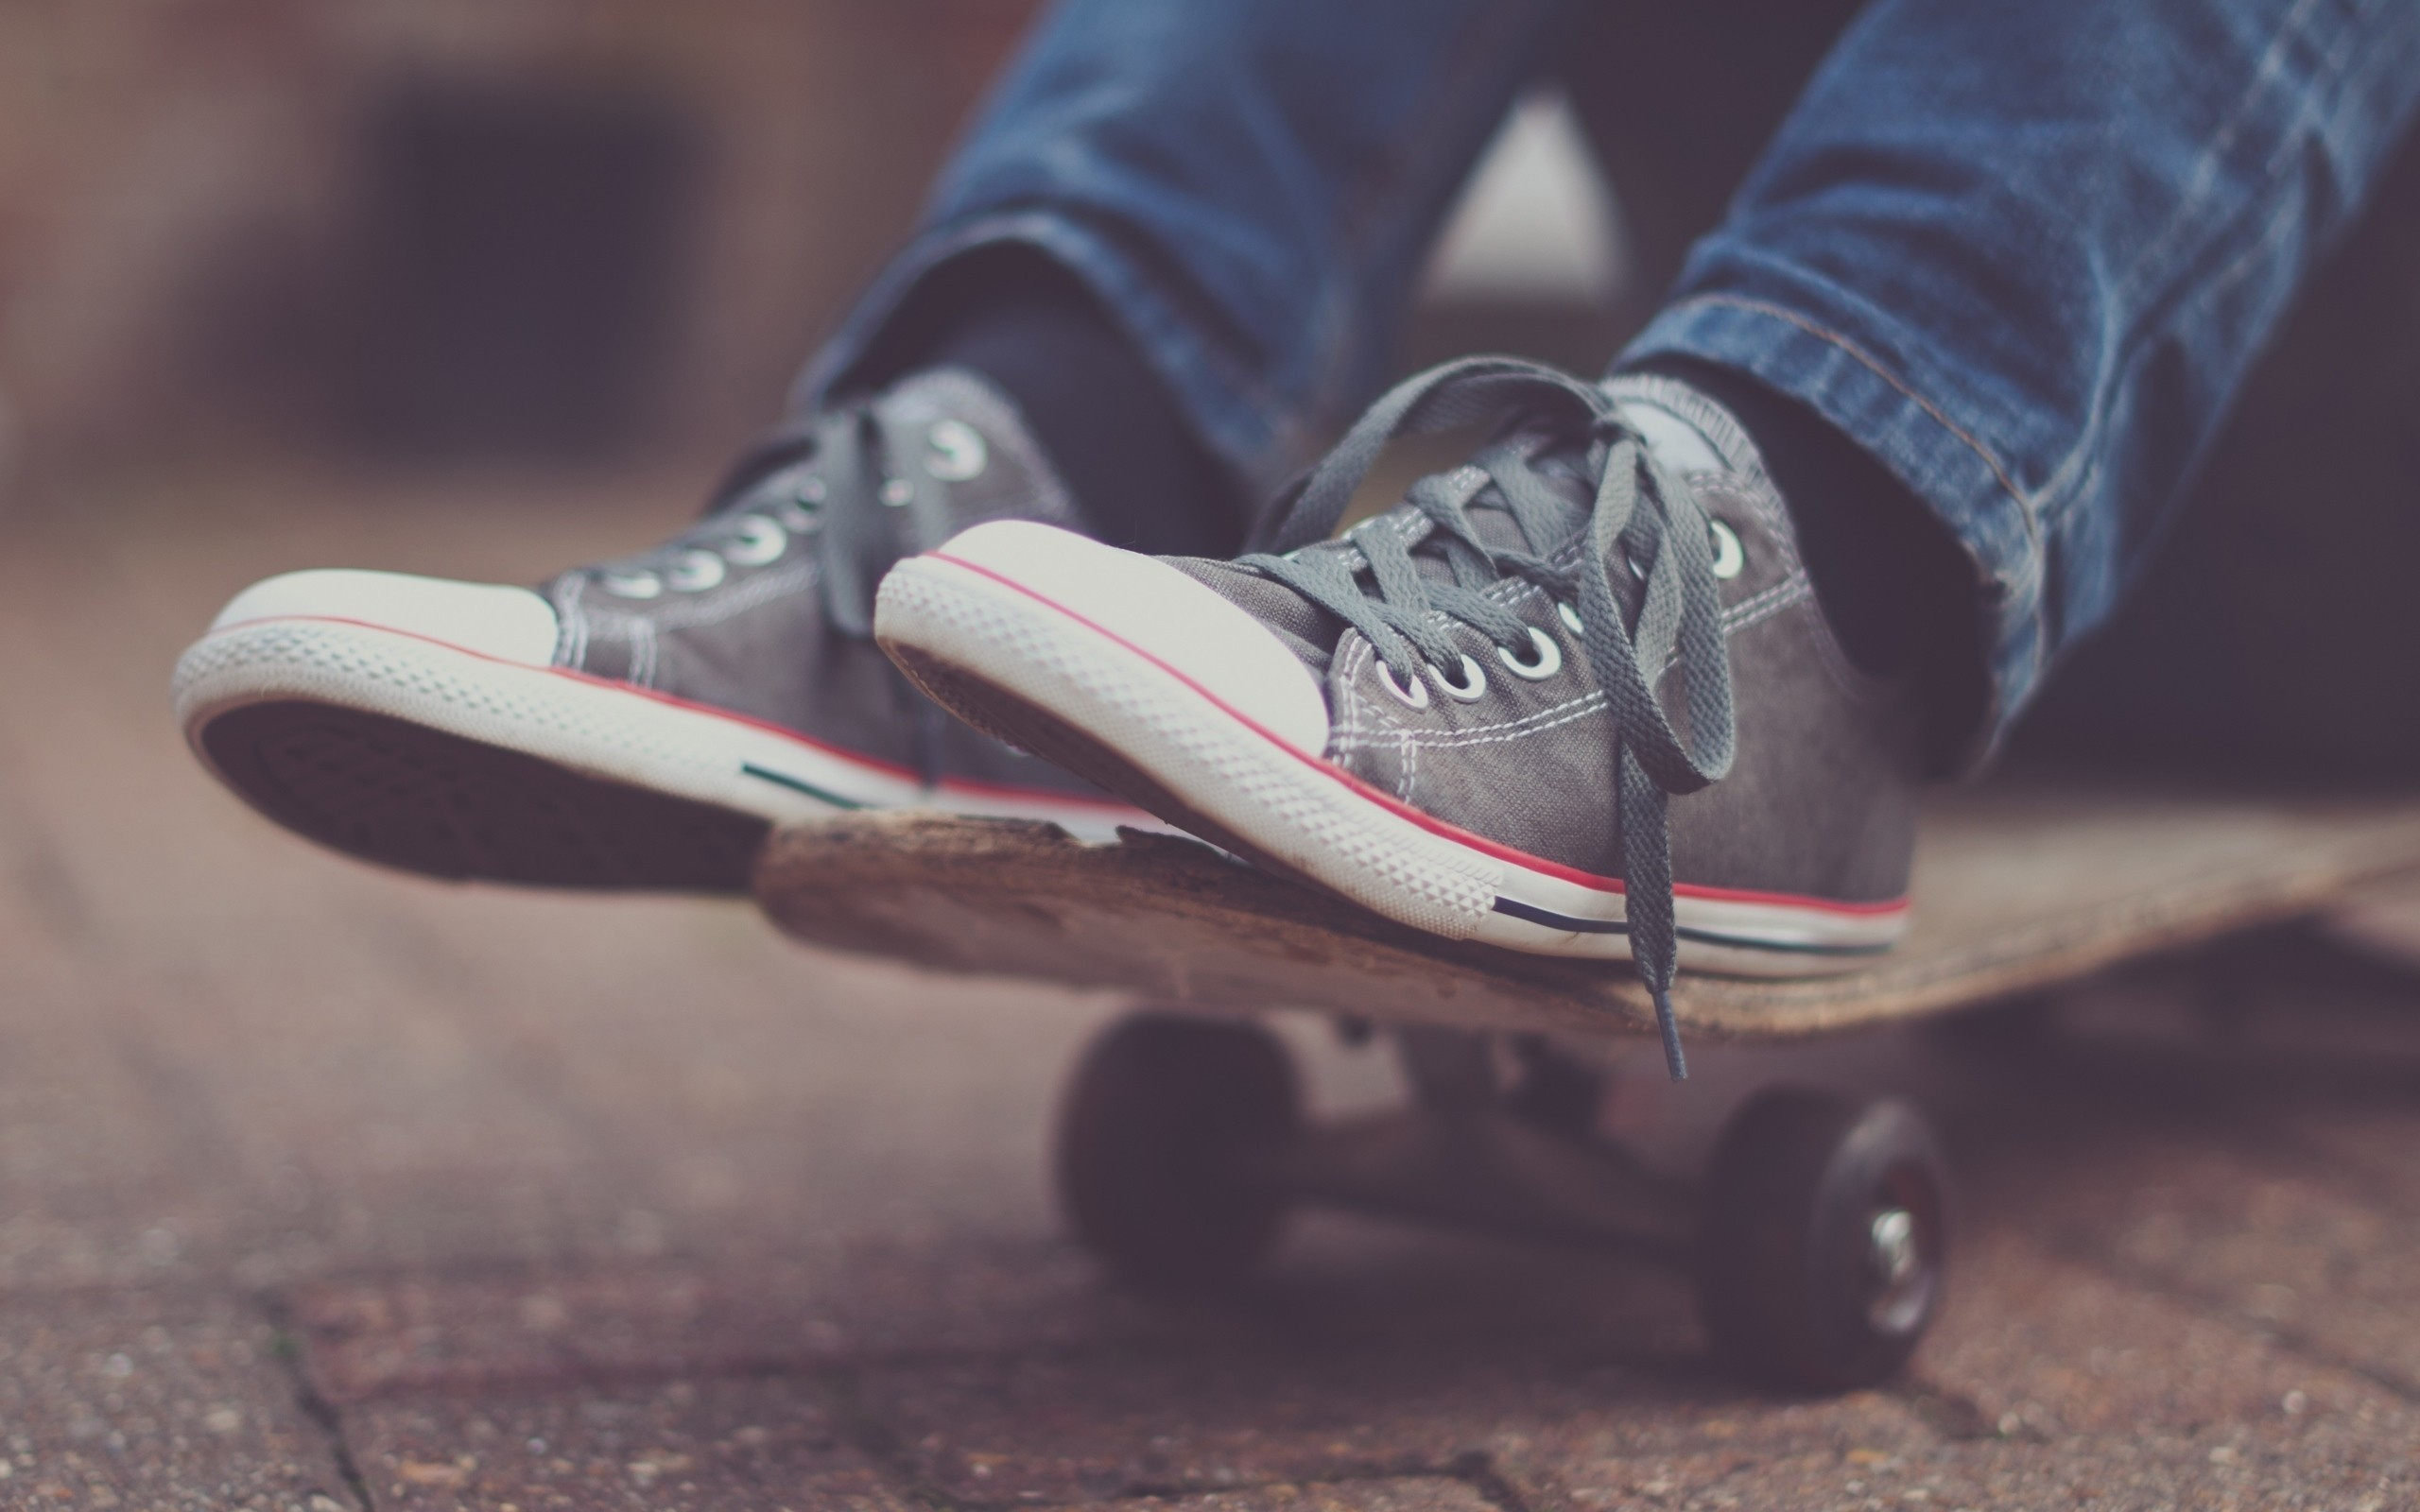 Res: 2560x1600, skateboarding wallpapers | WallpaperUP